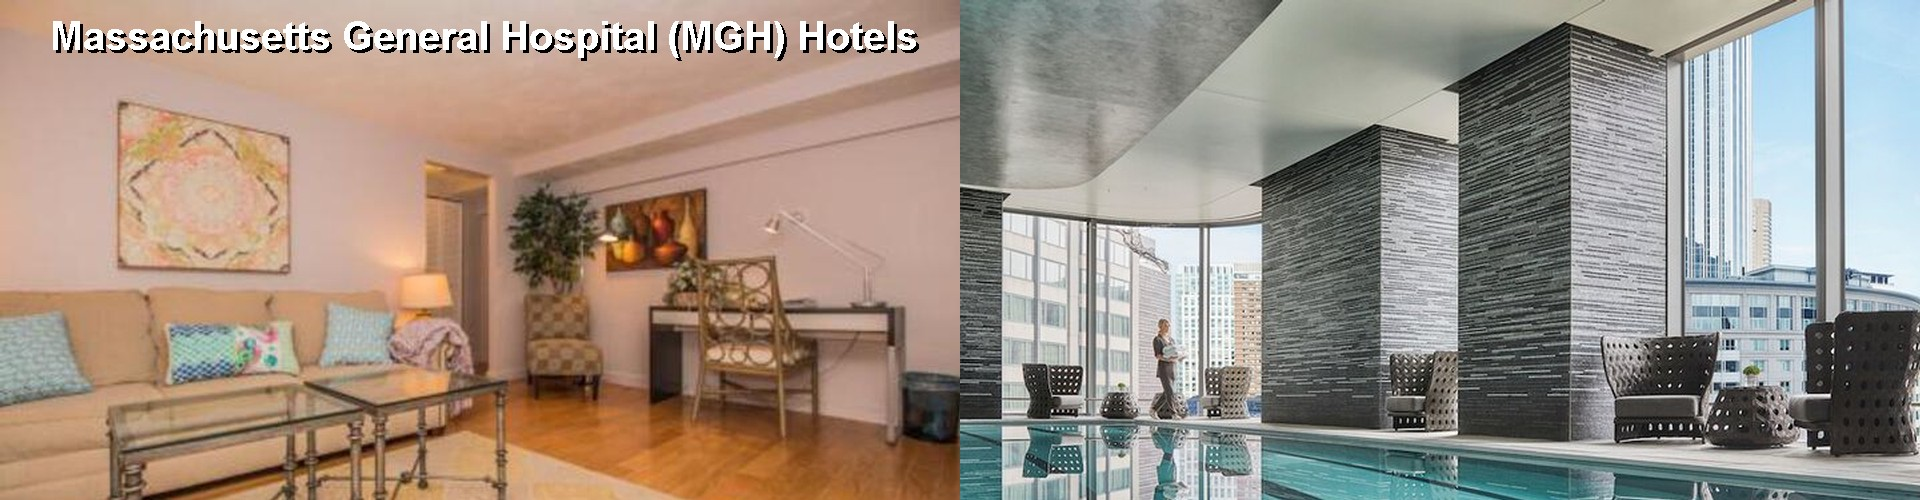 5 Best Hotels near Massachusetts General Hospital (MGH)